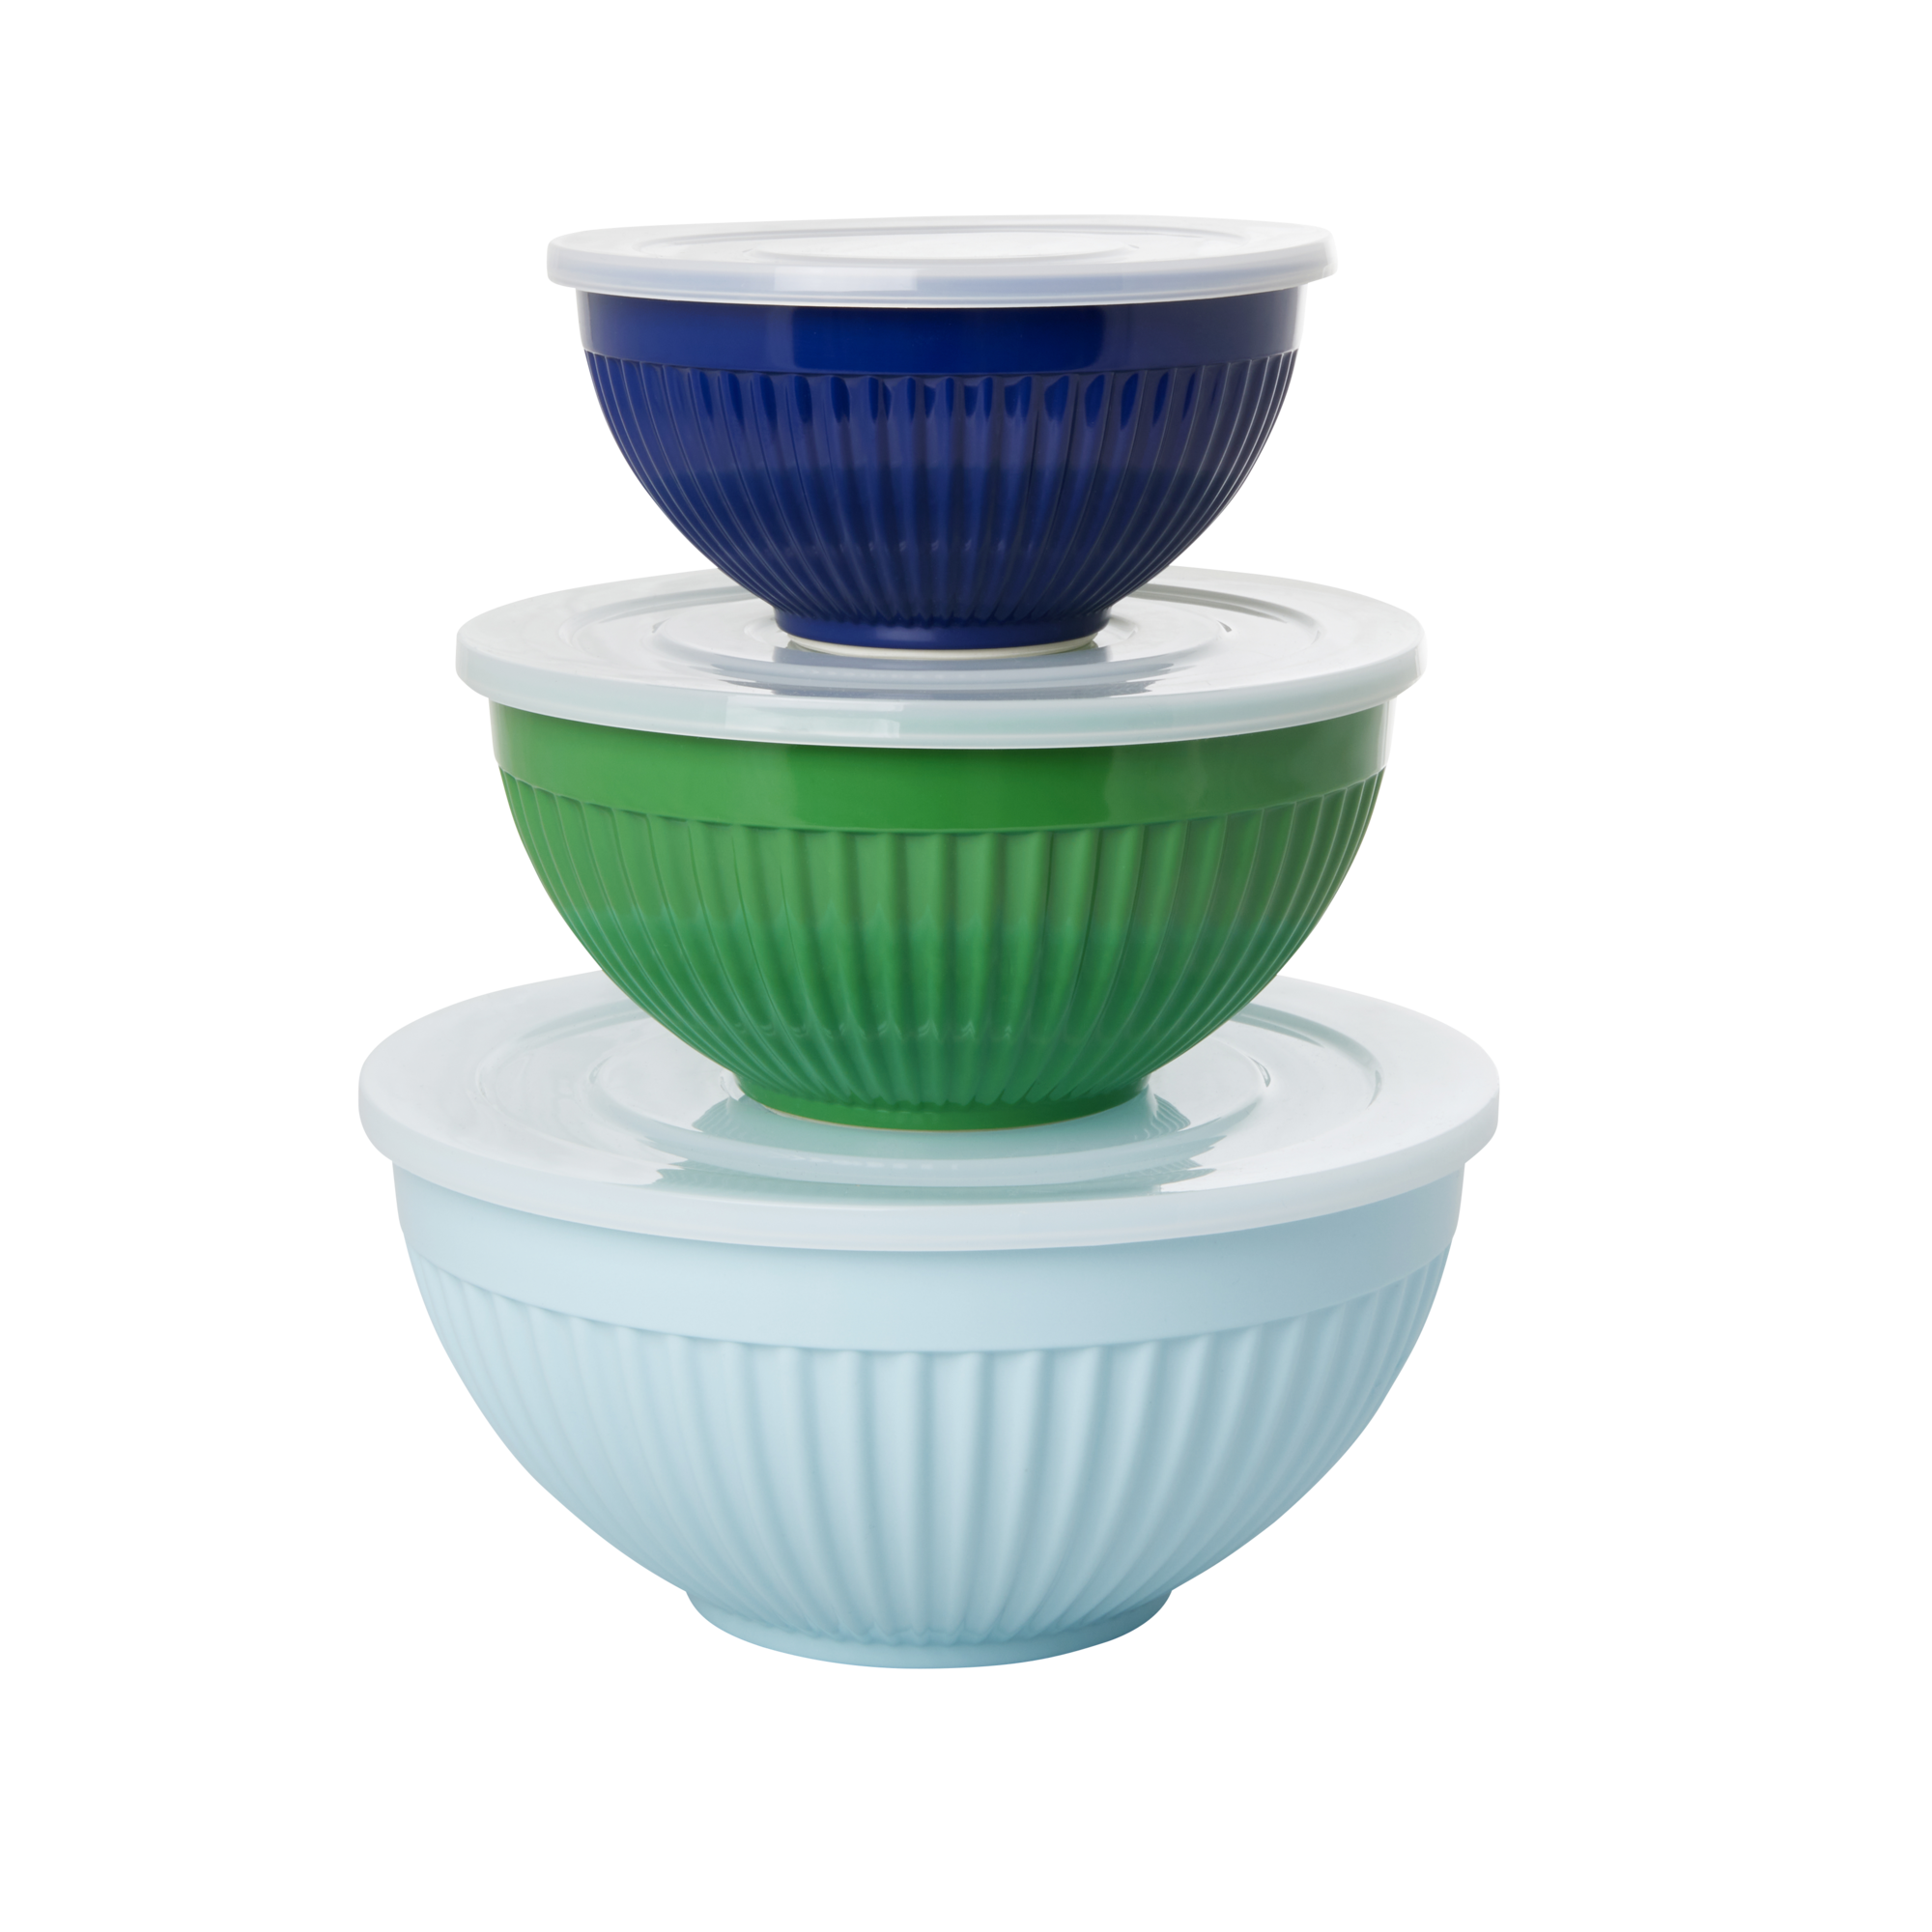 Rice - Melamine Bowls with Lid 3 pcs - Favorite Blue and Green Colors